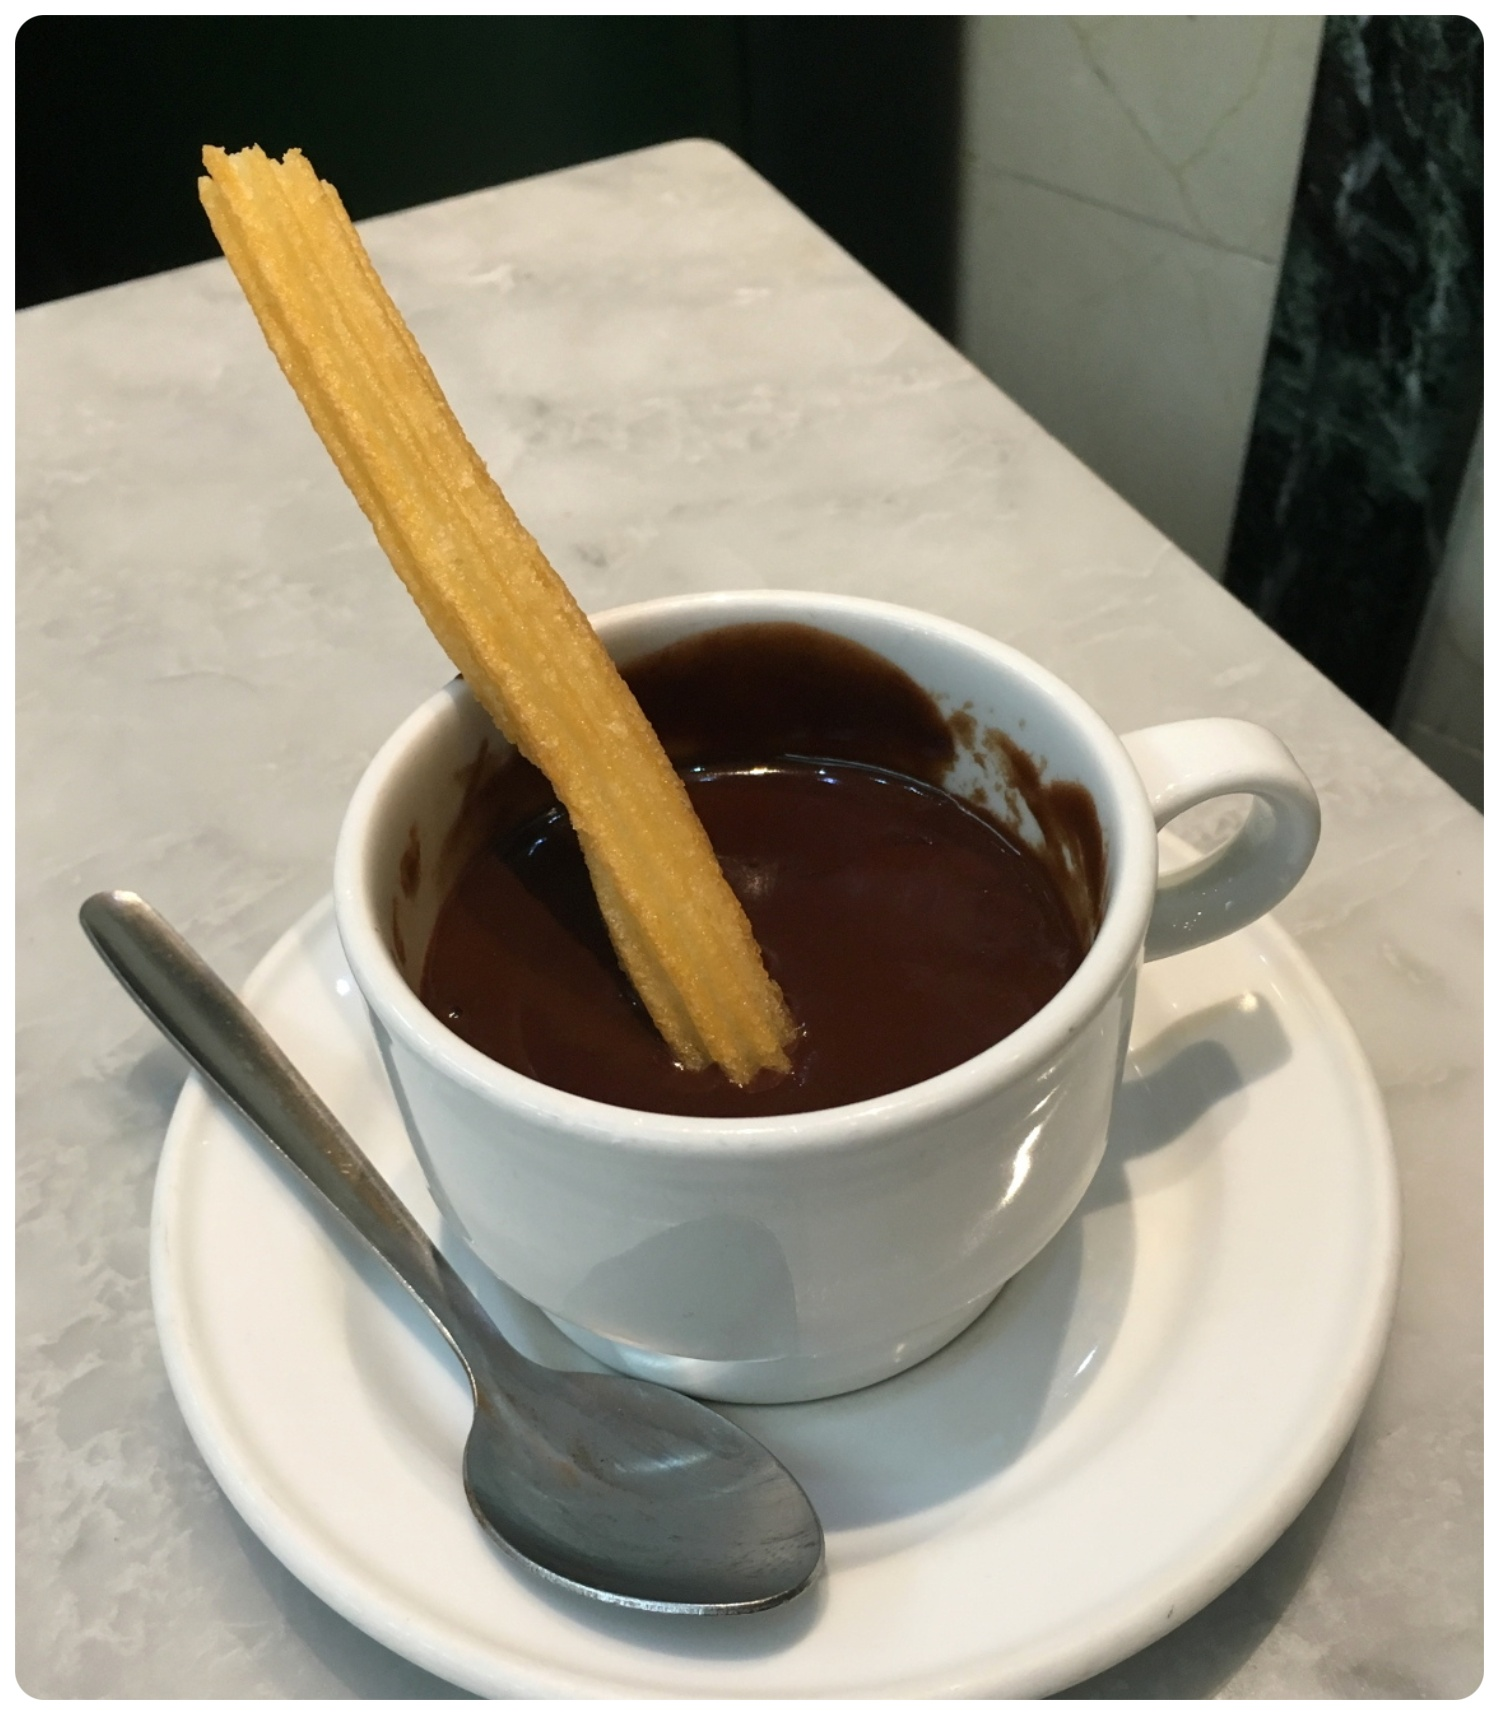 A traditional Spanish churro smothered in drinking chocolate. Just don't confuse the Spanish churro with a Mexican churro, they're quite different!